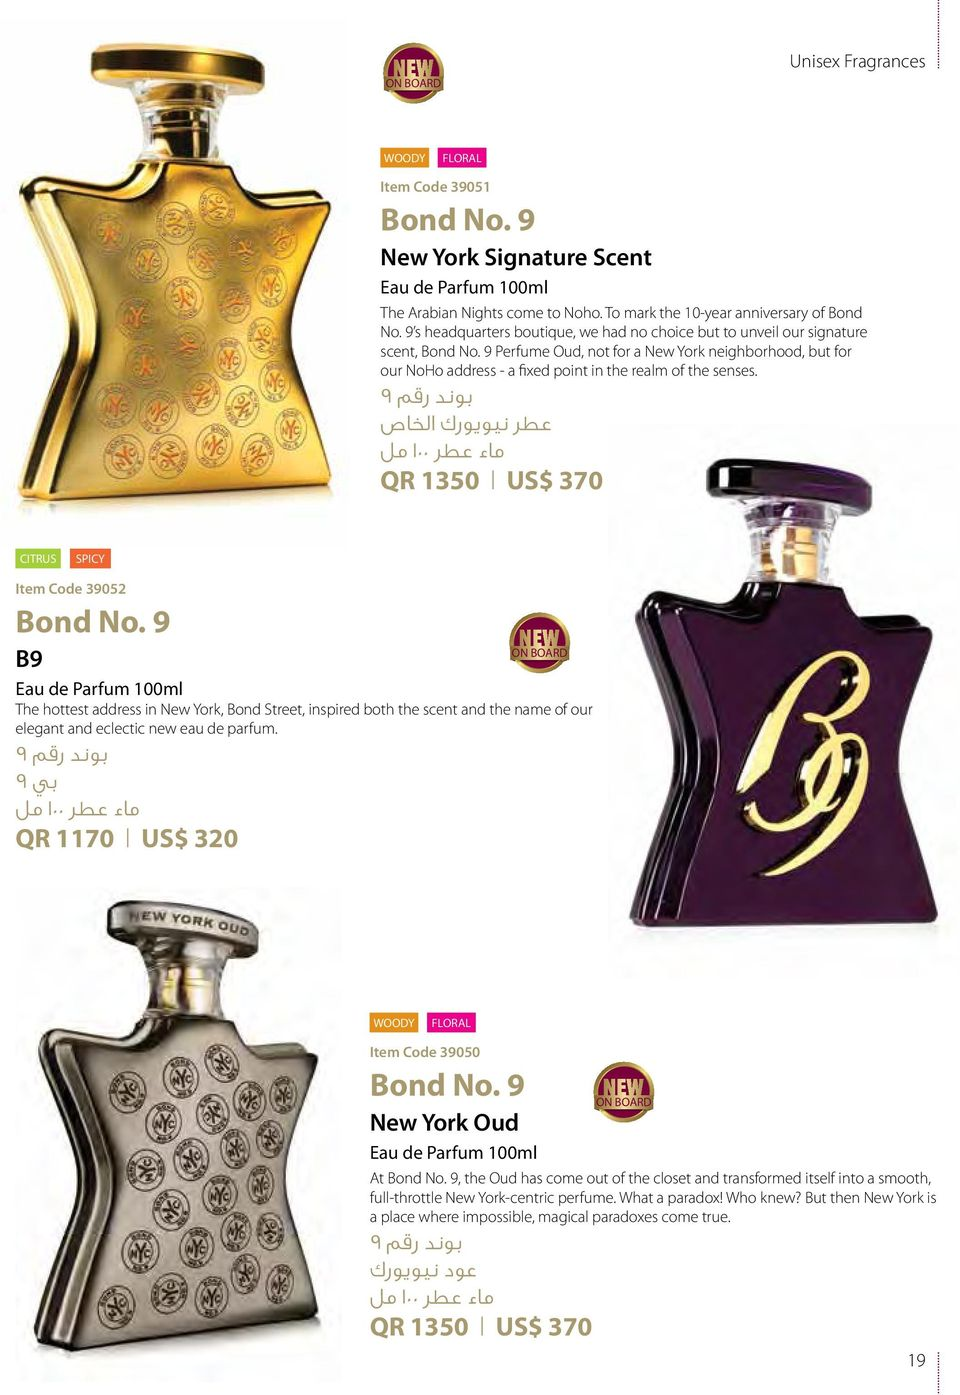 d041e6262 9 Perfume Oud, not for a New York neighborhood, but for our NoHo address